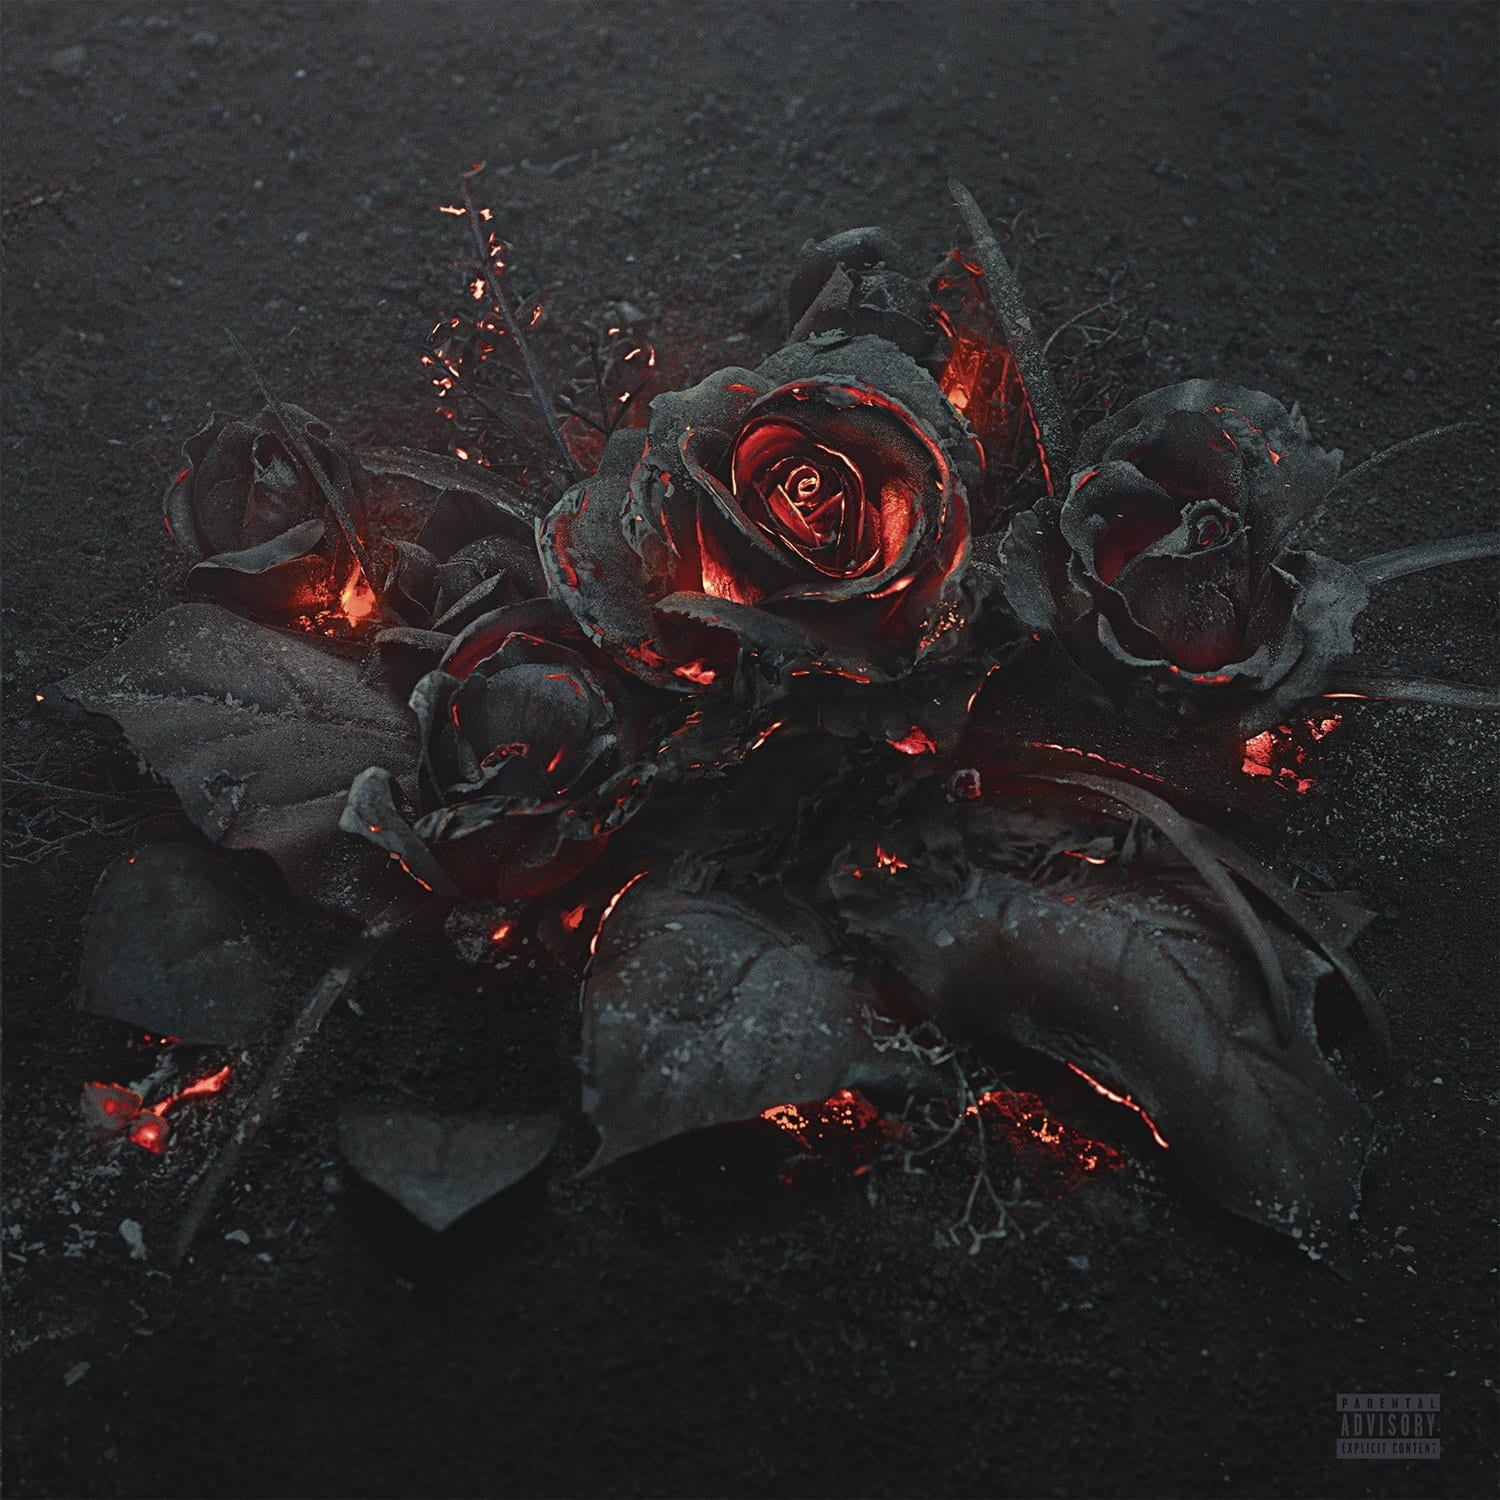 Future - Evol [LP] (Flame Colored Vinyl, download )